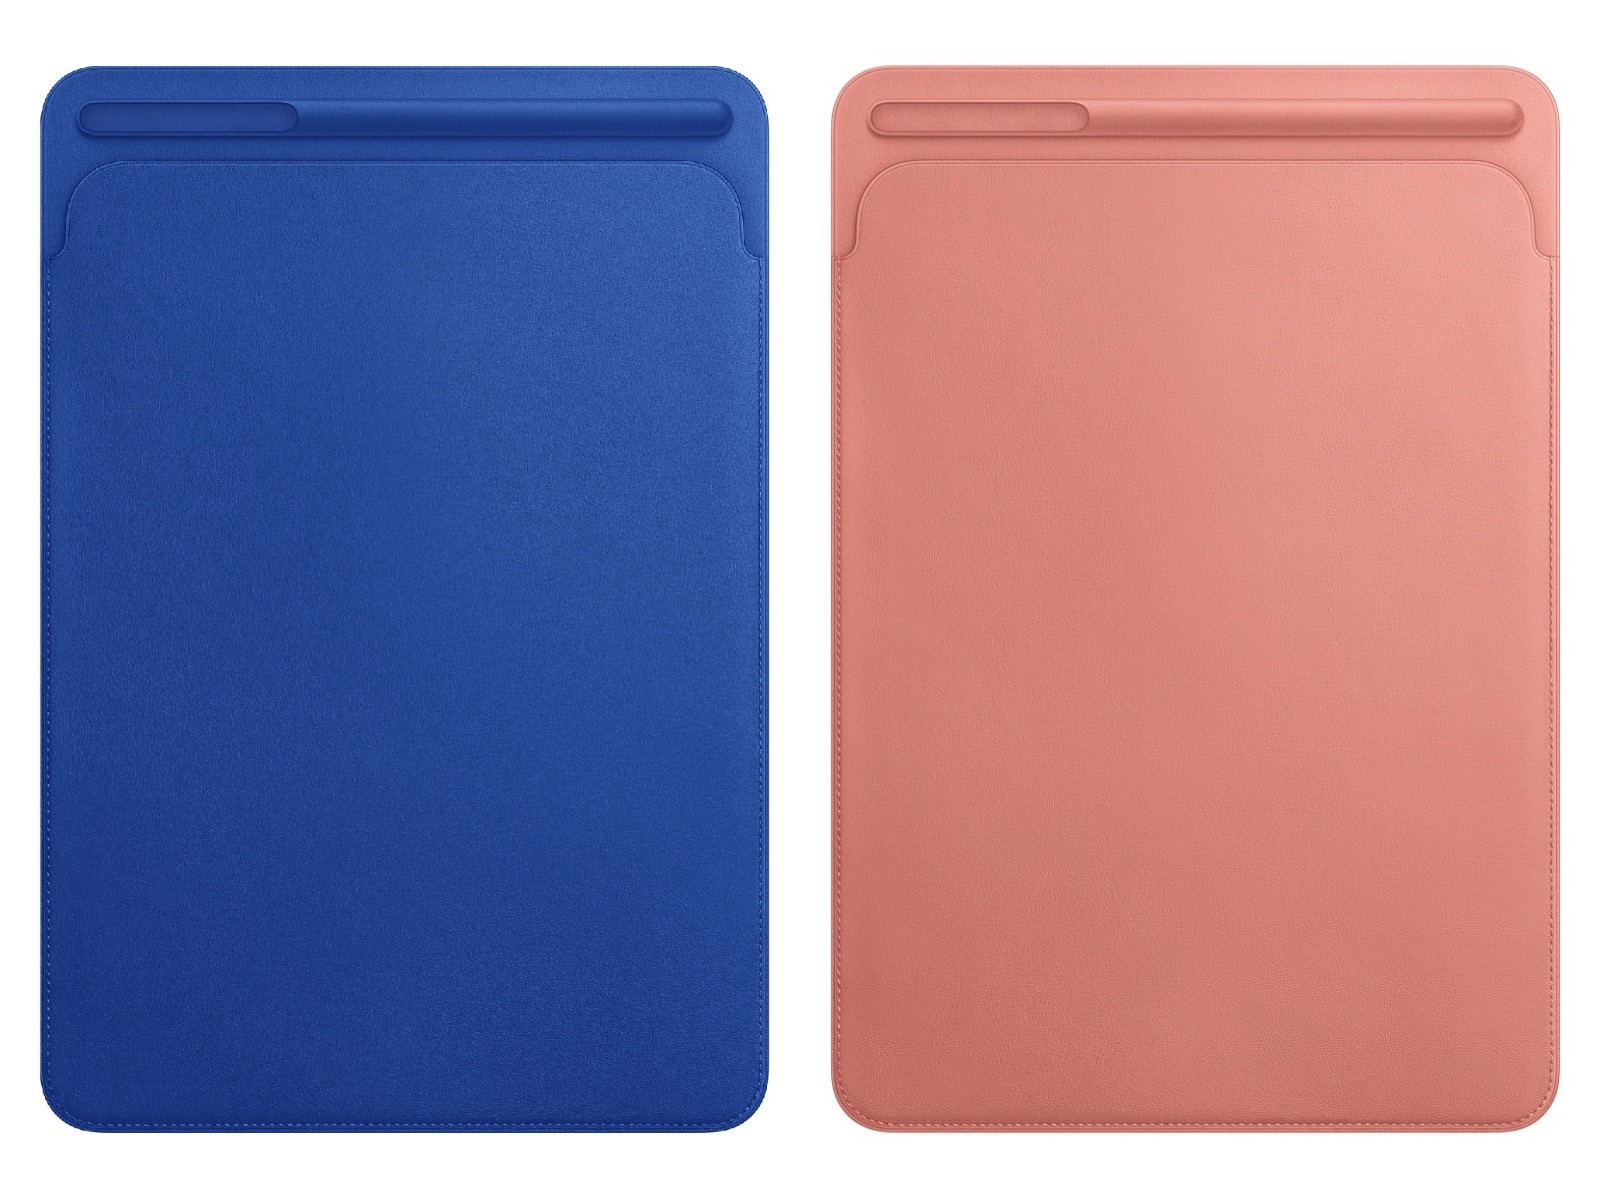 Leather Sleeve for iPad Pro